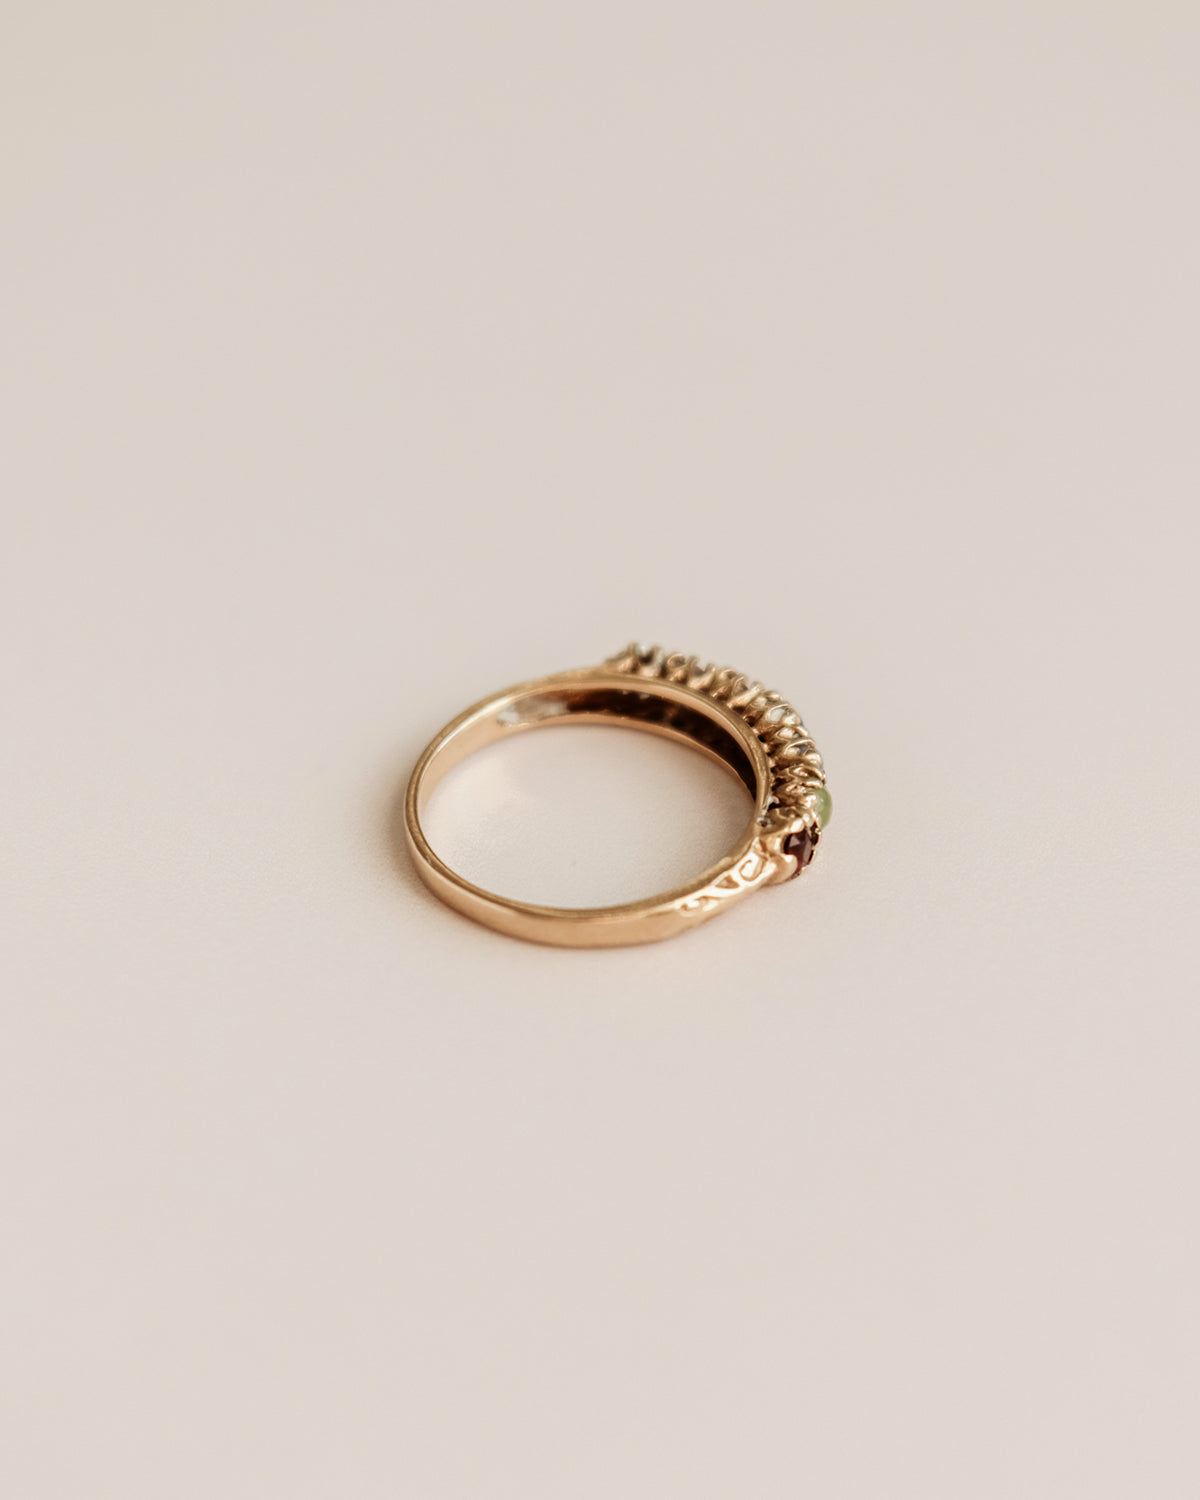 Darling Exclusive Vintage 9ct Gold Ring